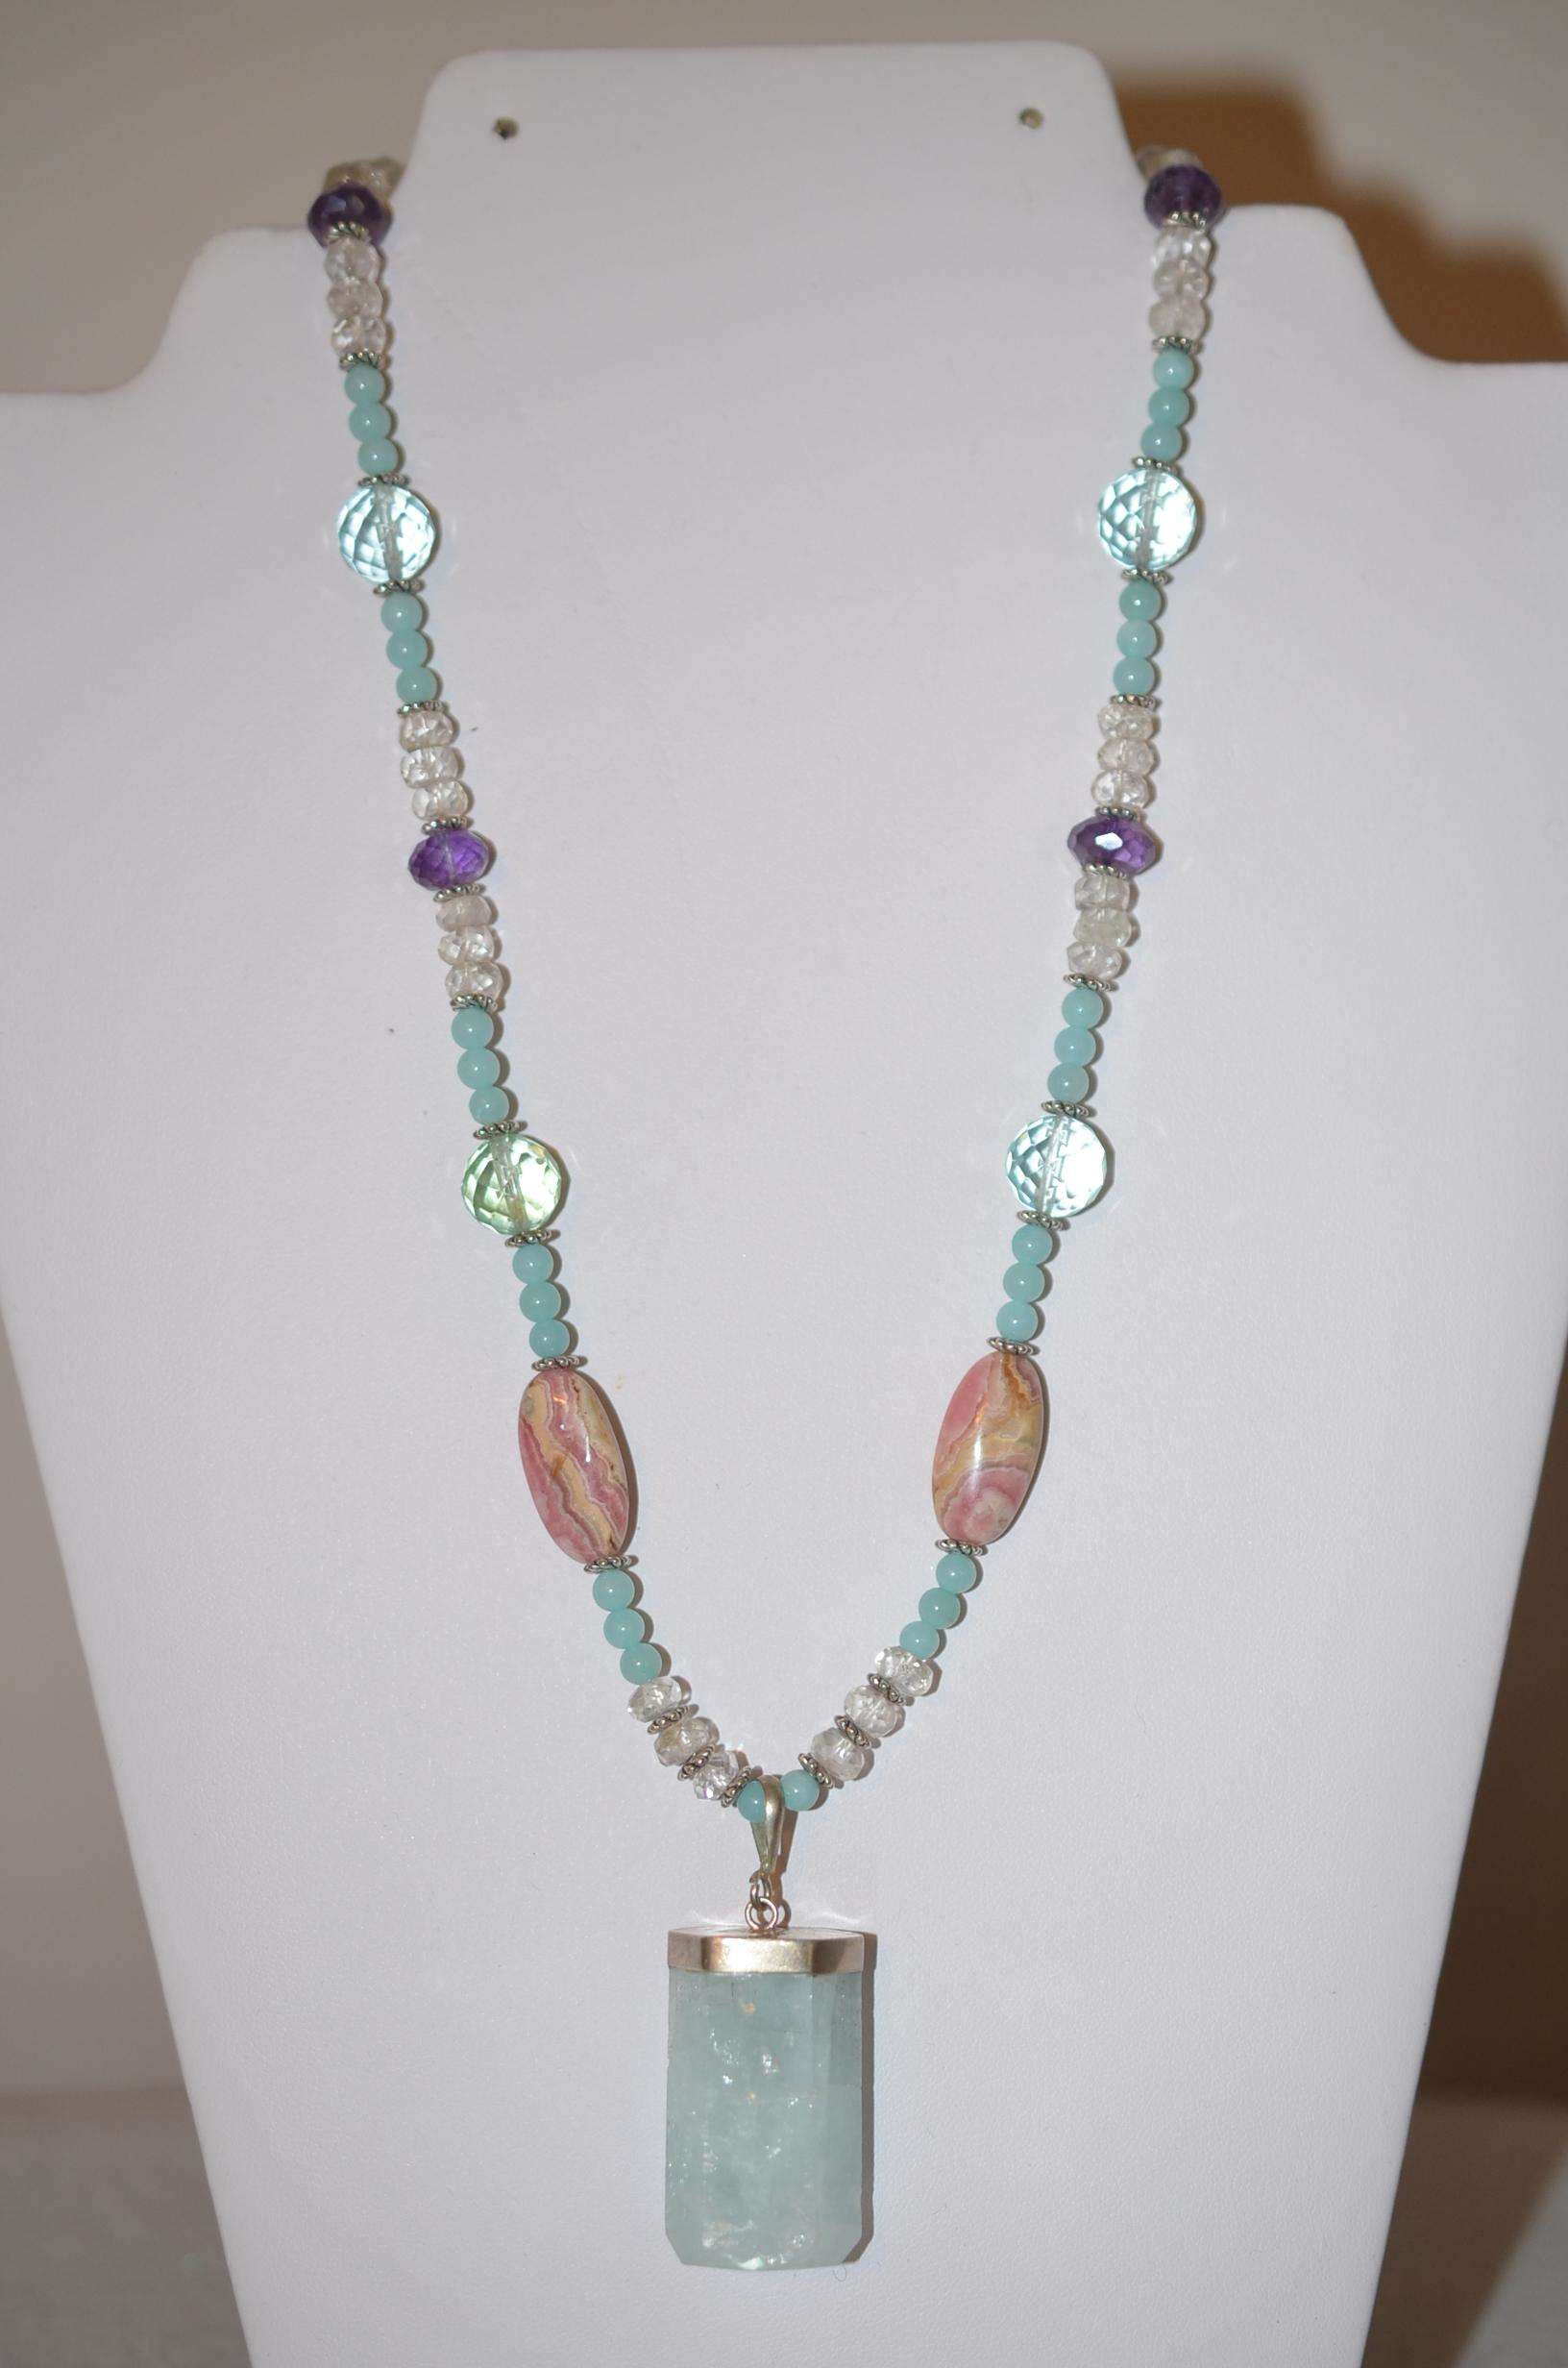 shop rhodochrosite necklaces through aquamarine a with journey dsc art jewelry pendant